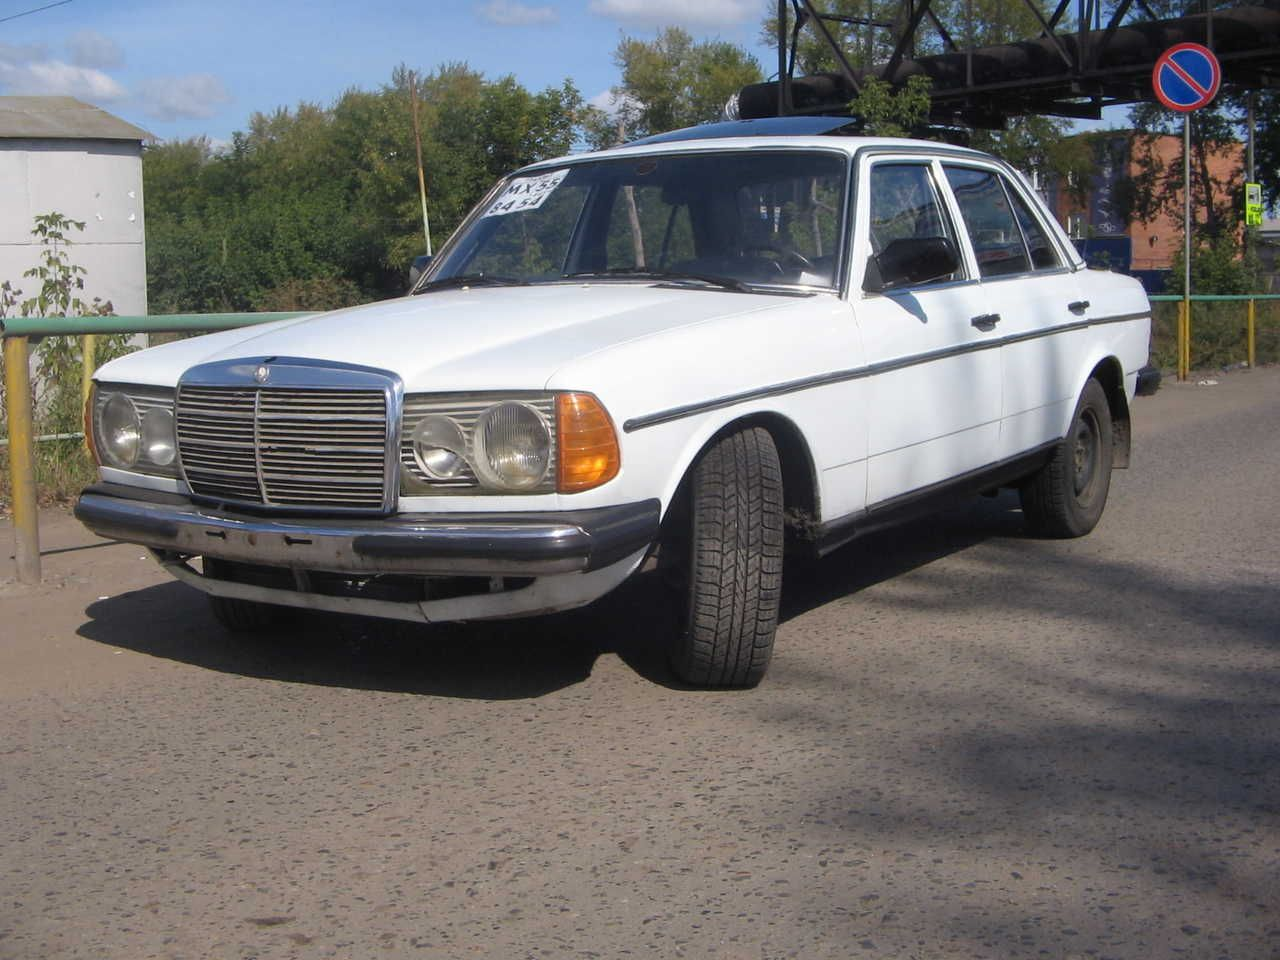 1980 mercedes benz g class mercedes benz g class ebay for Used mercedes benz for sale on ebay